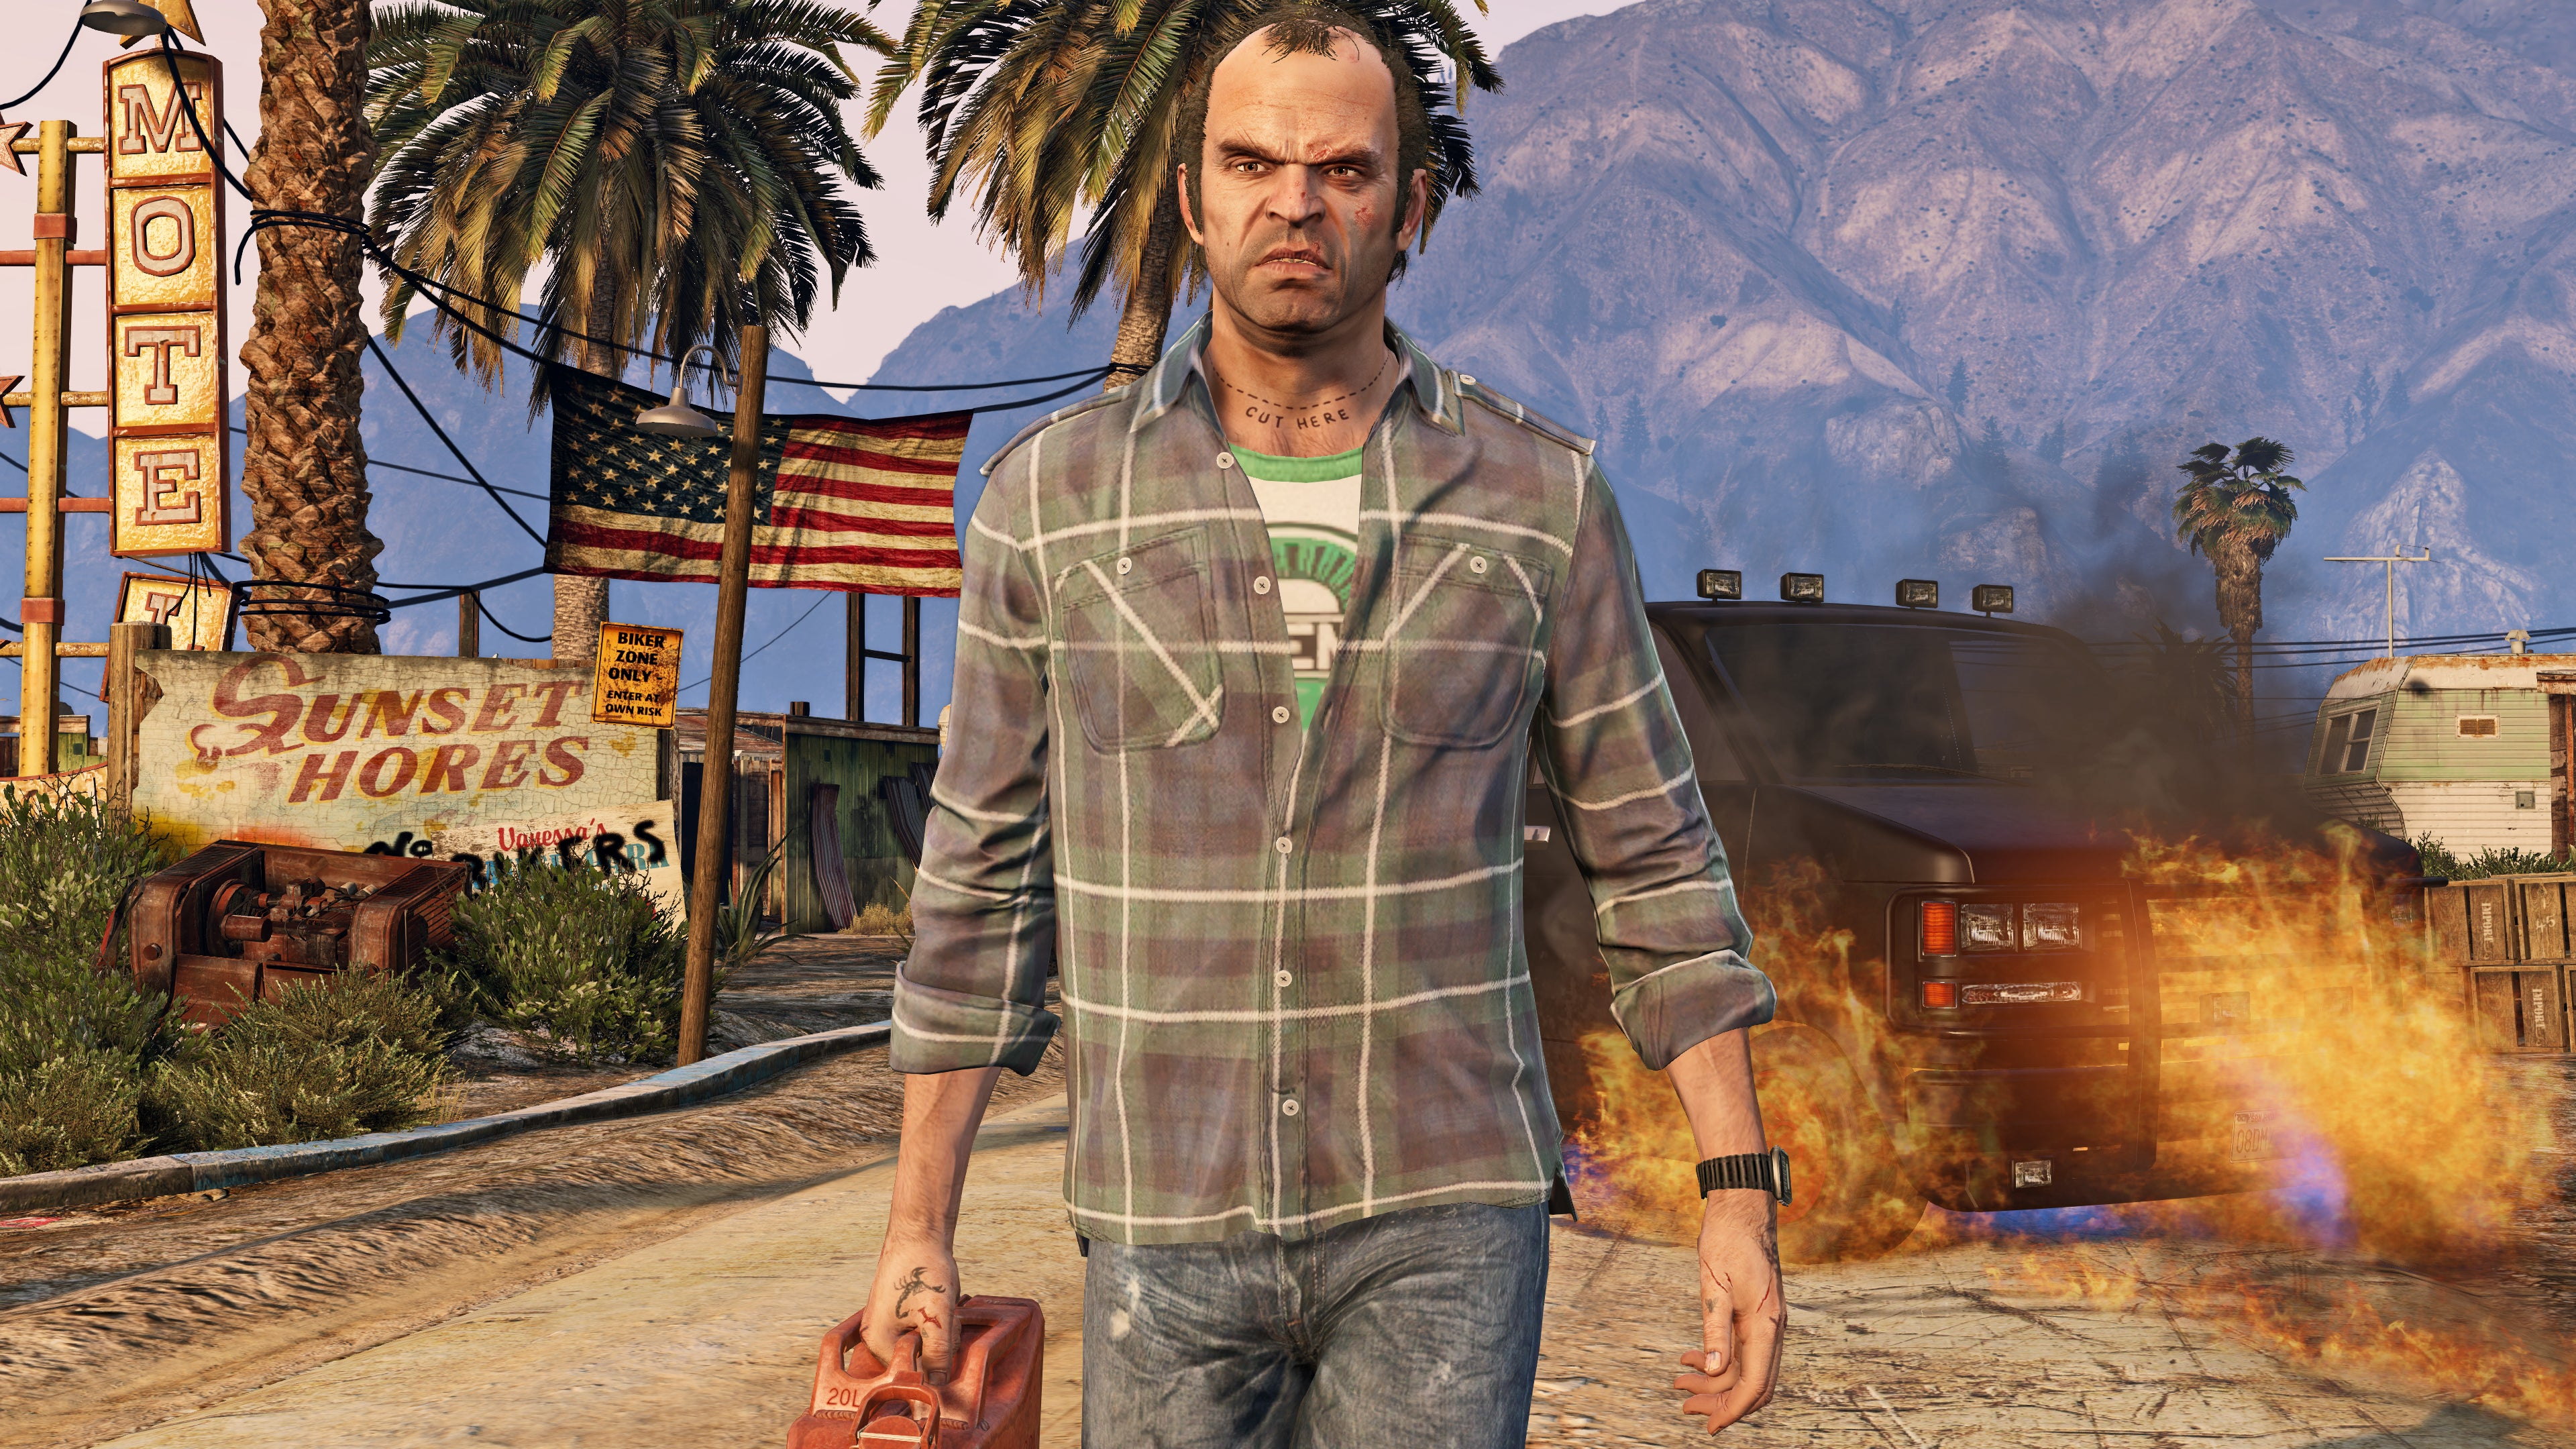 GTA Producer Leslie Benzies Sues Rockstar For $US150 Million, Rockstar Sues Back